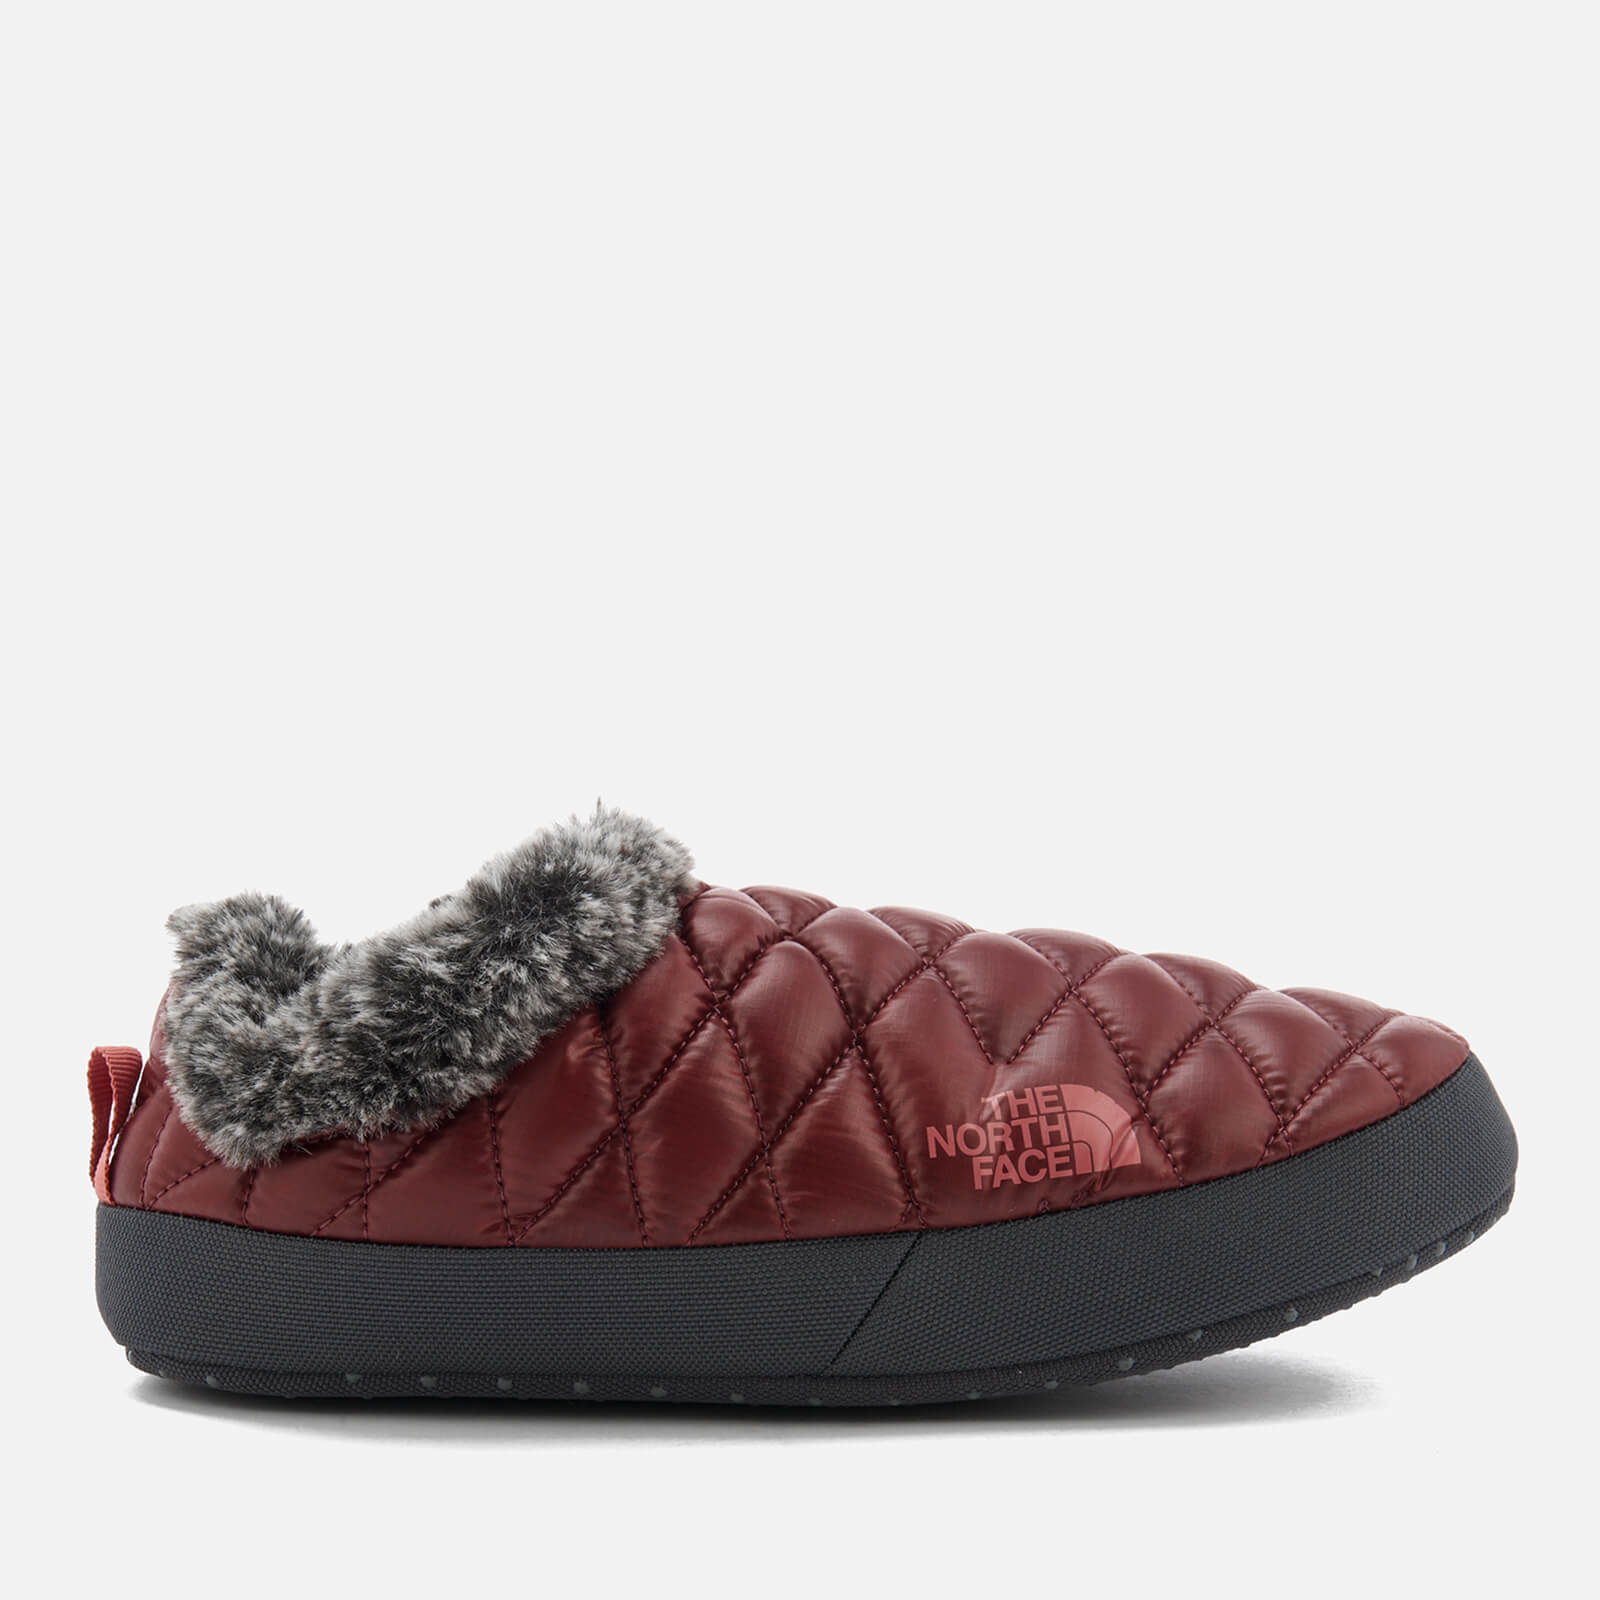 red north face slippers